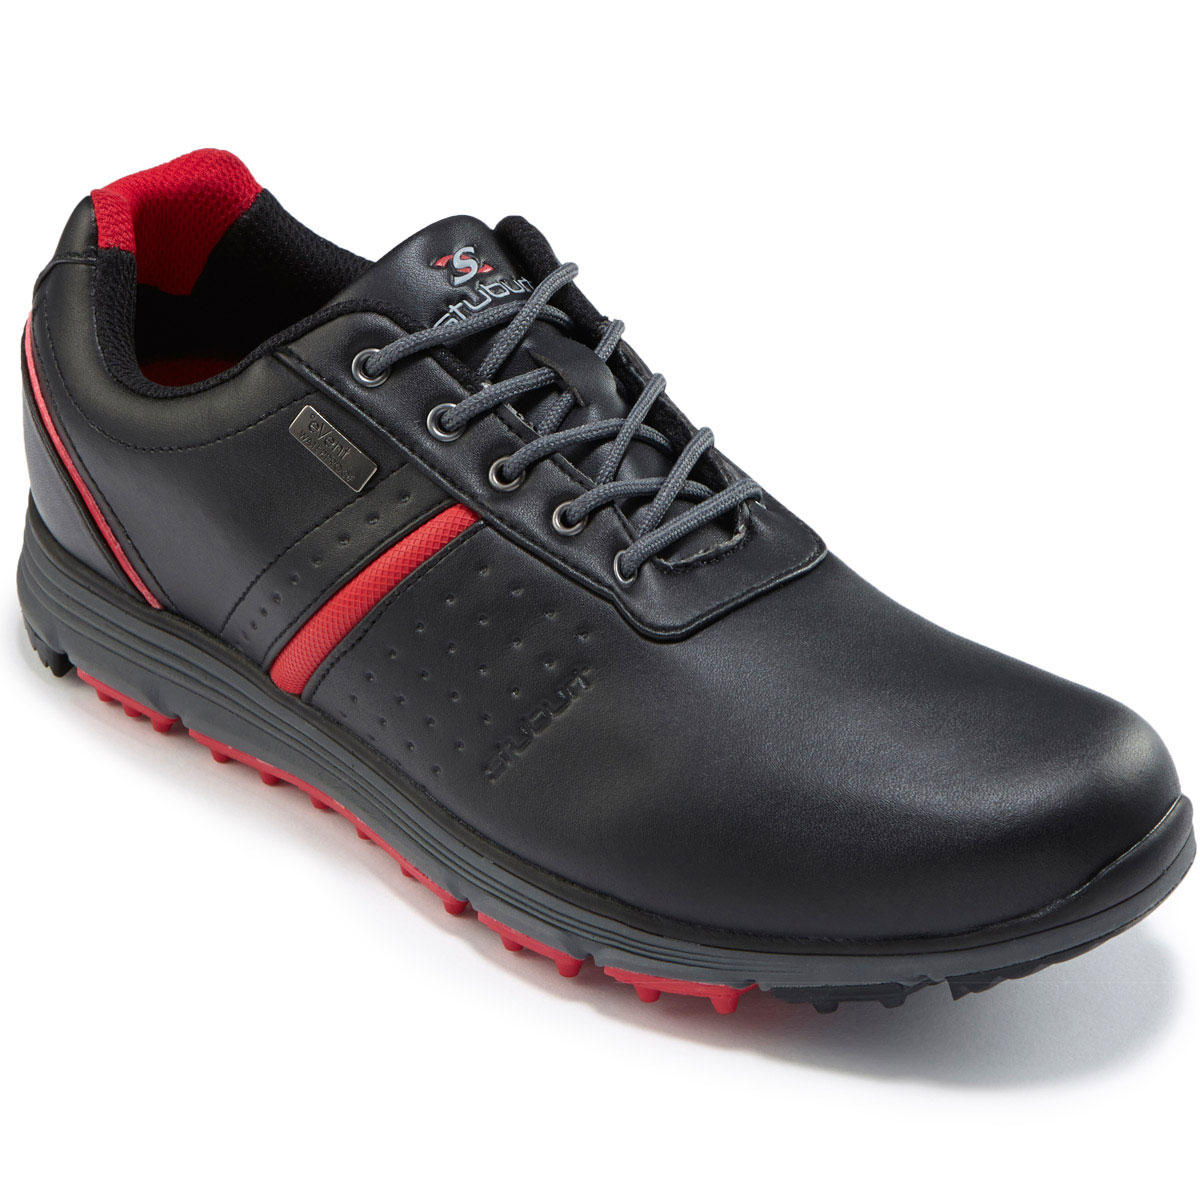 Spikeless Stuburt Golf Shoes